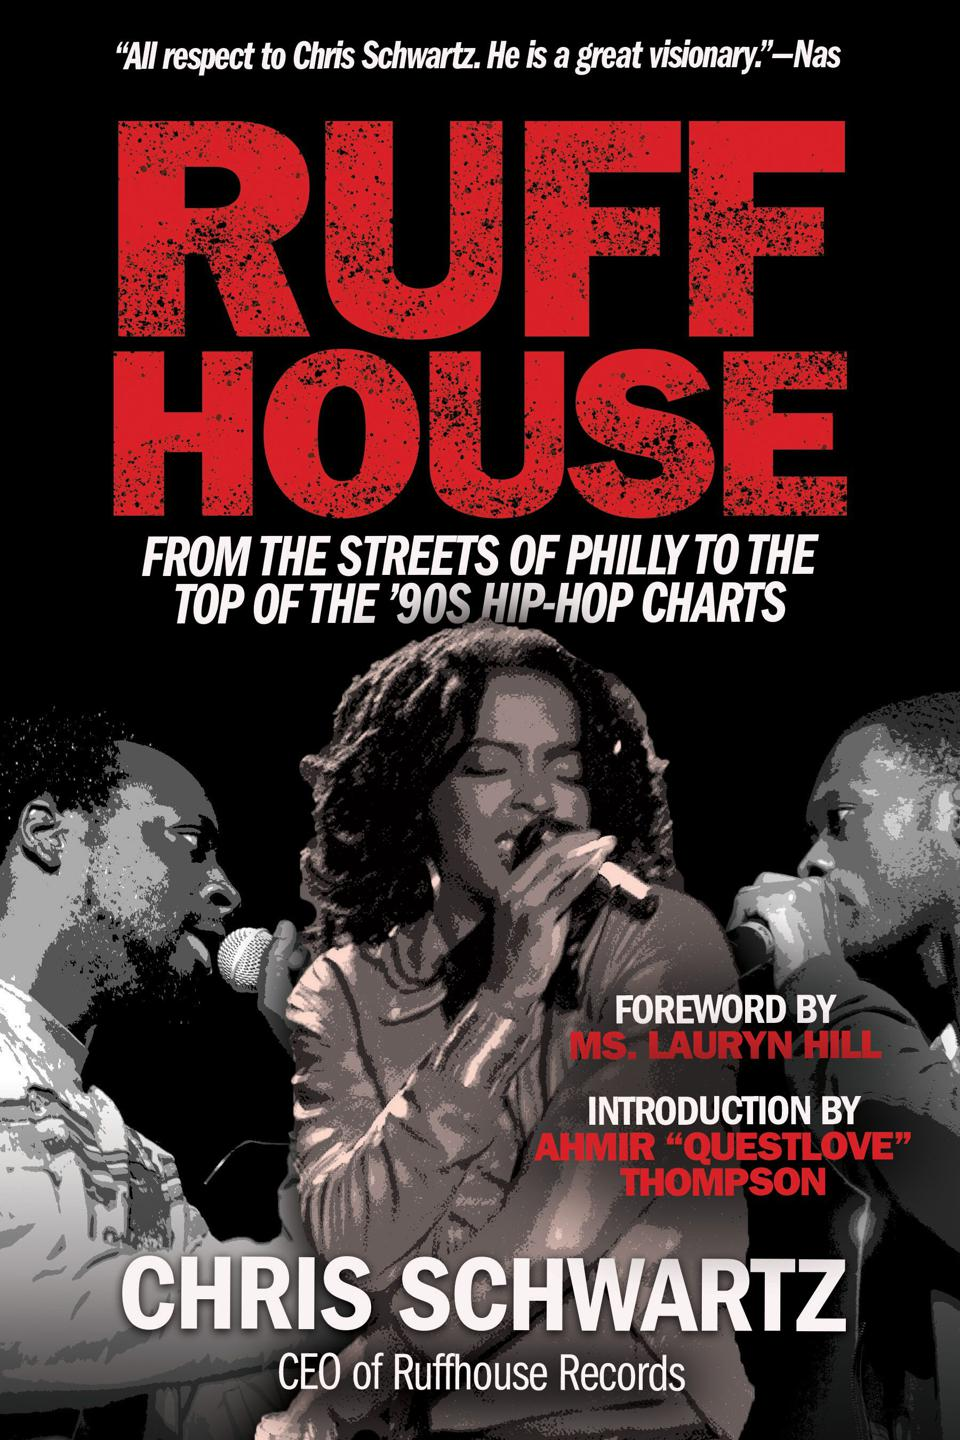 Ruffhouse Records CEO Chris Schwartz On The Fugees, Lauryn